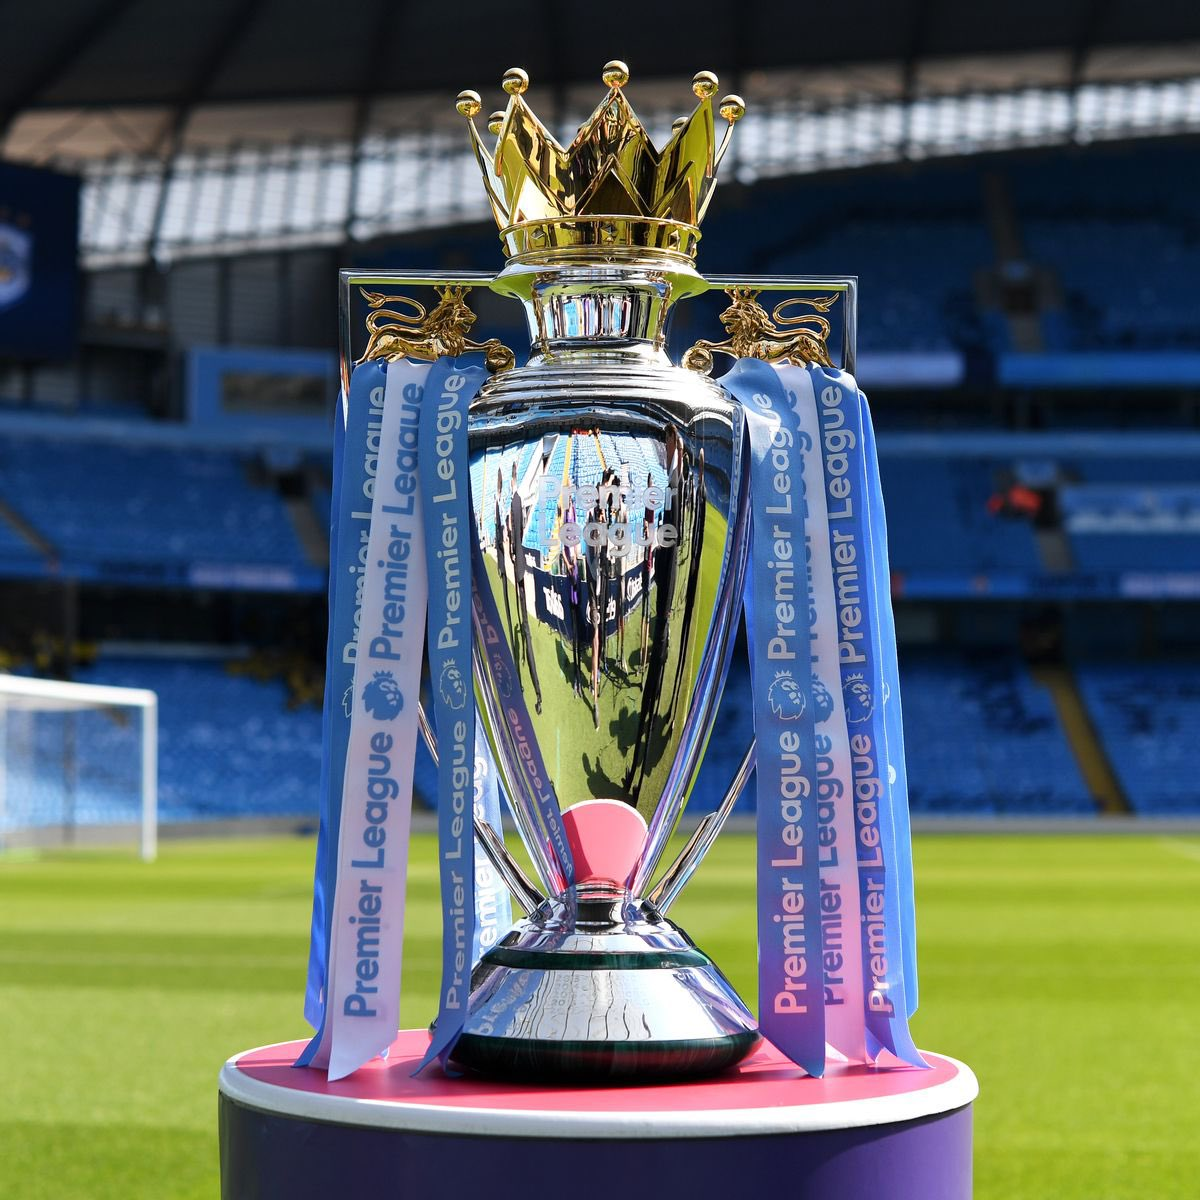 In less than 5 hours, Manchester City might have 7th First Division Title 🏆   1936–37, 1967–68, 2011–12, 2013–14, 2017–18, 2018–19 & 2020–21  #mancity #mcfc #premierleague https://t.co/VnTbq0X4AQ